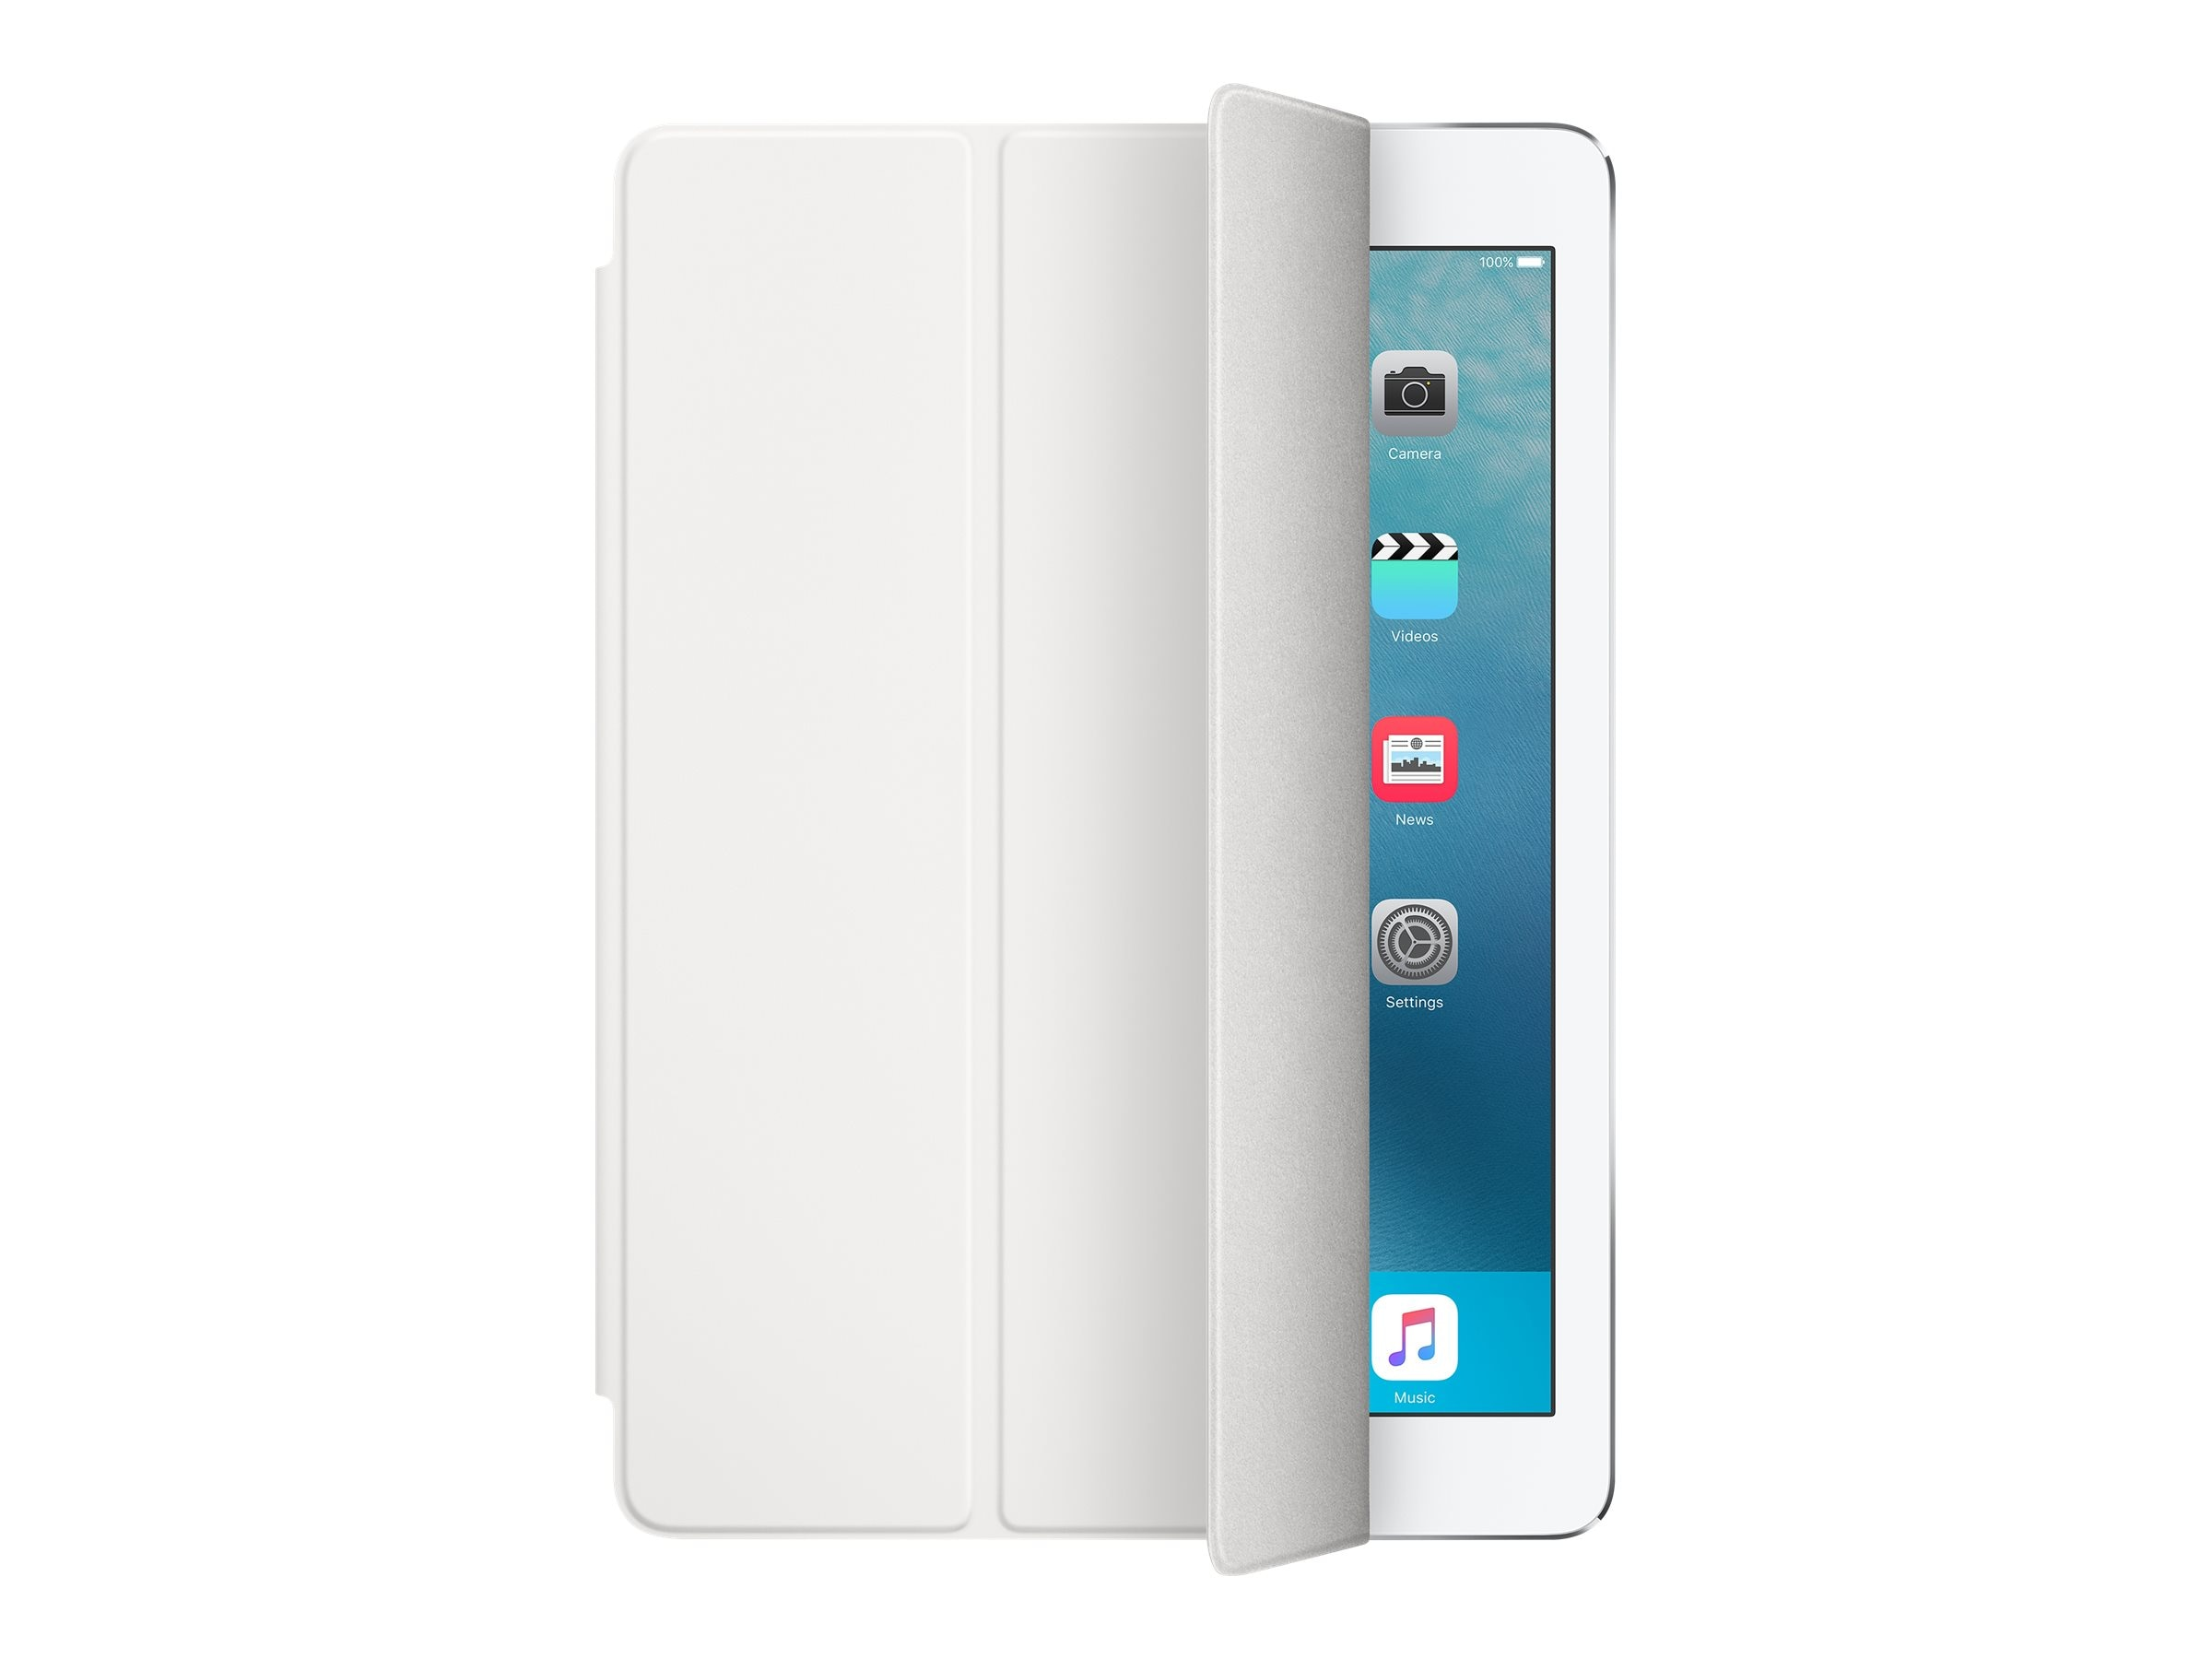 Apple Smart Cover for iPad Pro 9.7, White, MM2A2AM/A, 31812036, Carrying Cases - Tablets & eReaders